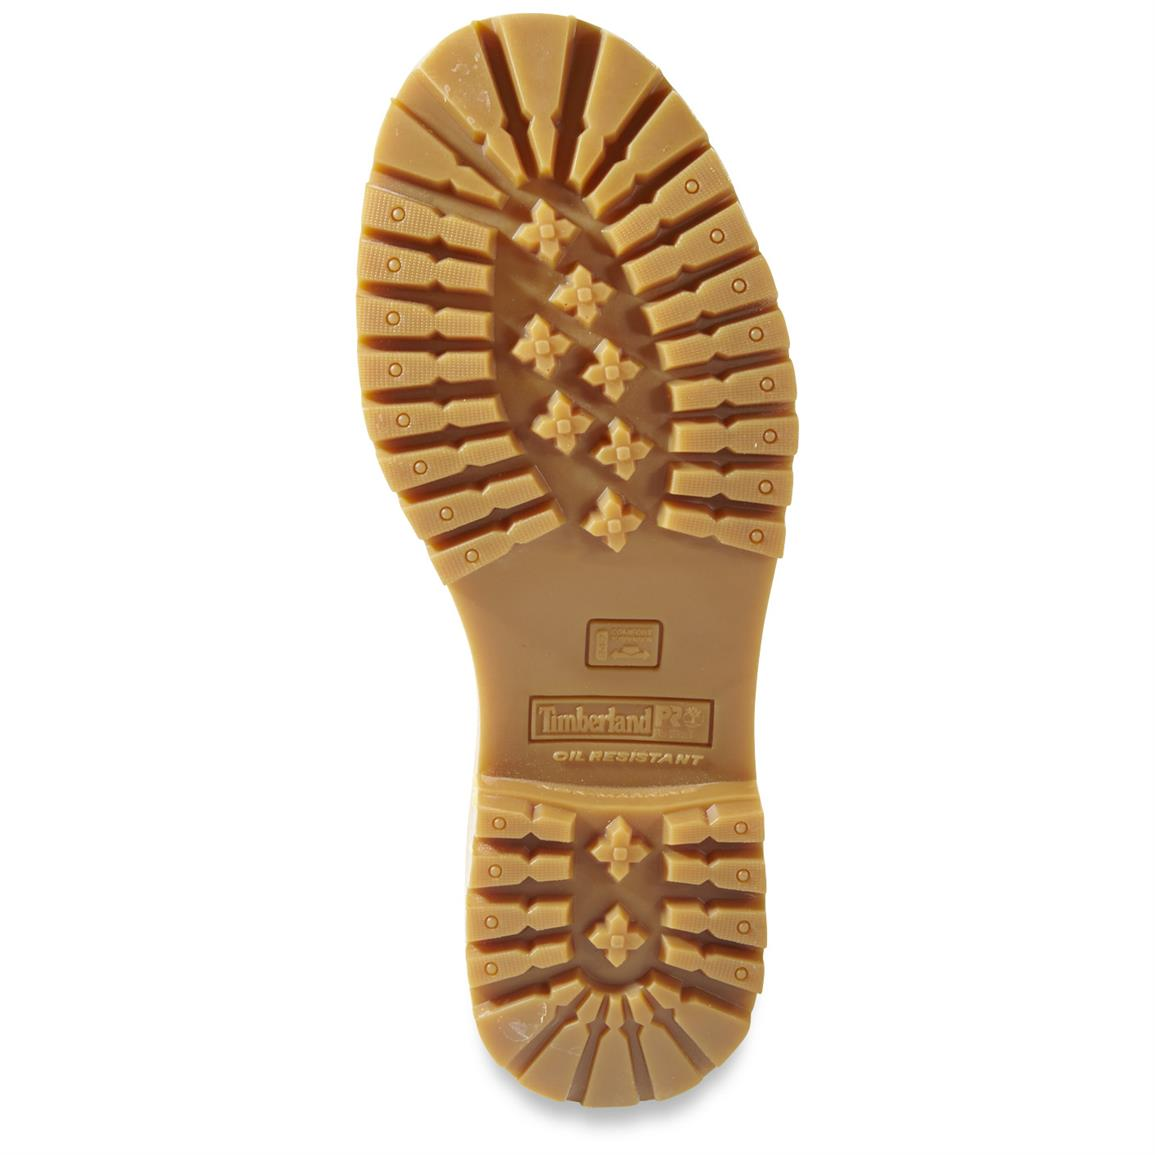 Timberland PRO oil-resistant, non-marking rubber lug outsole for top traction